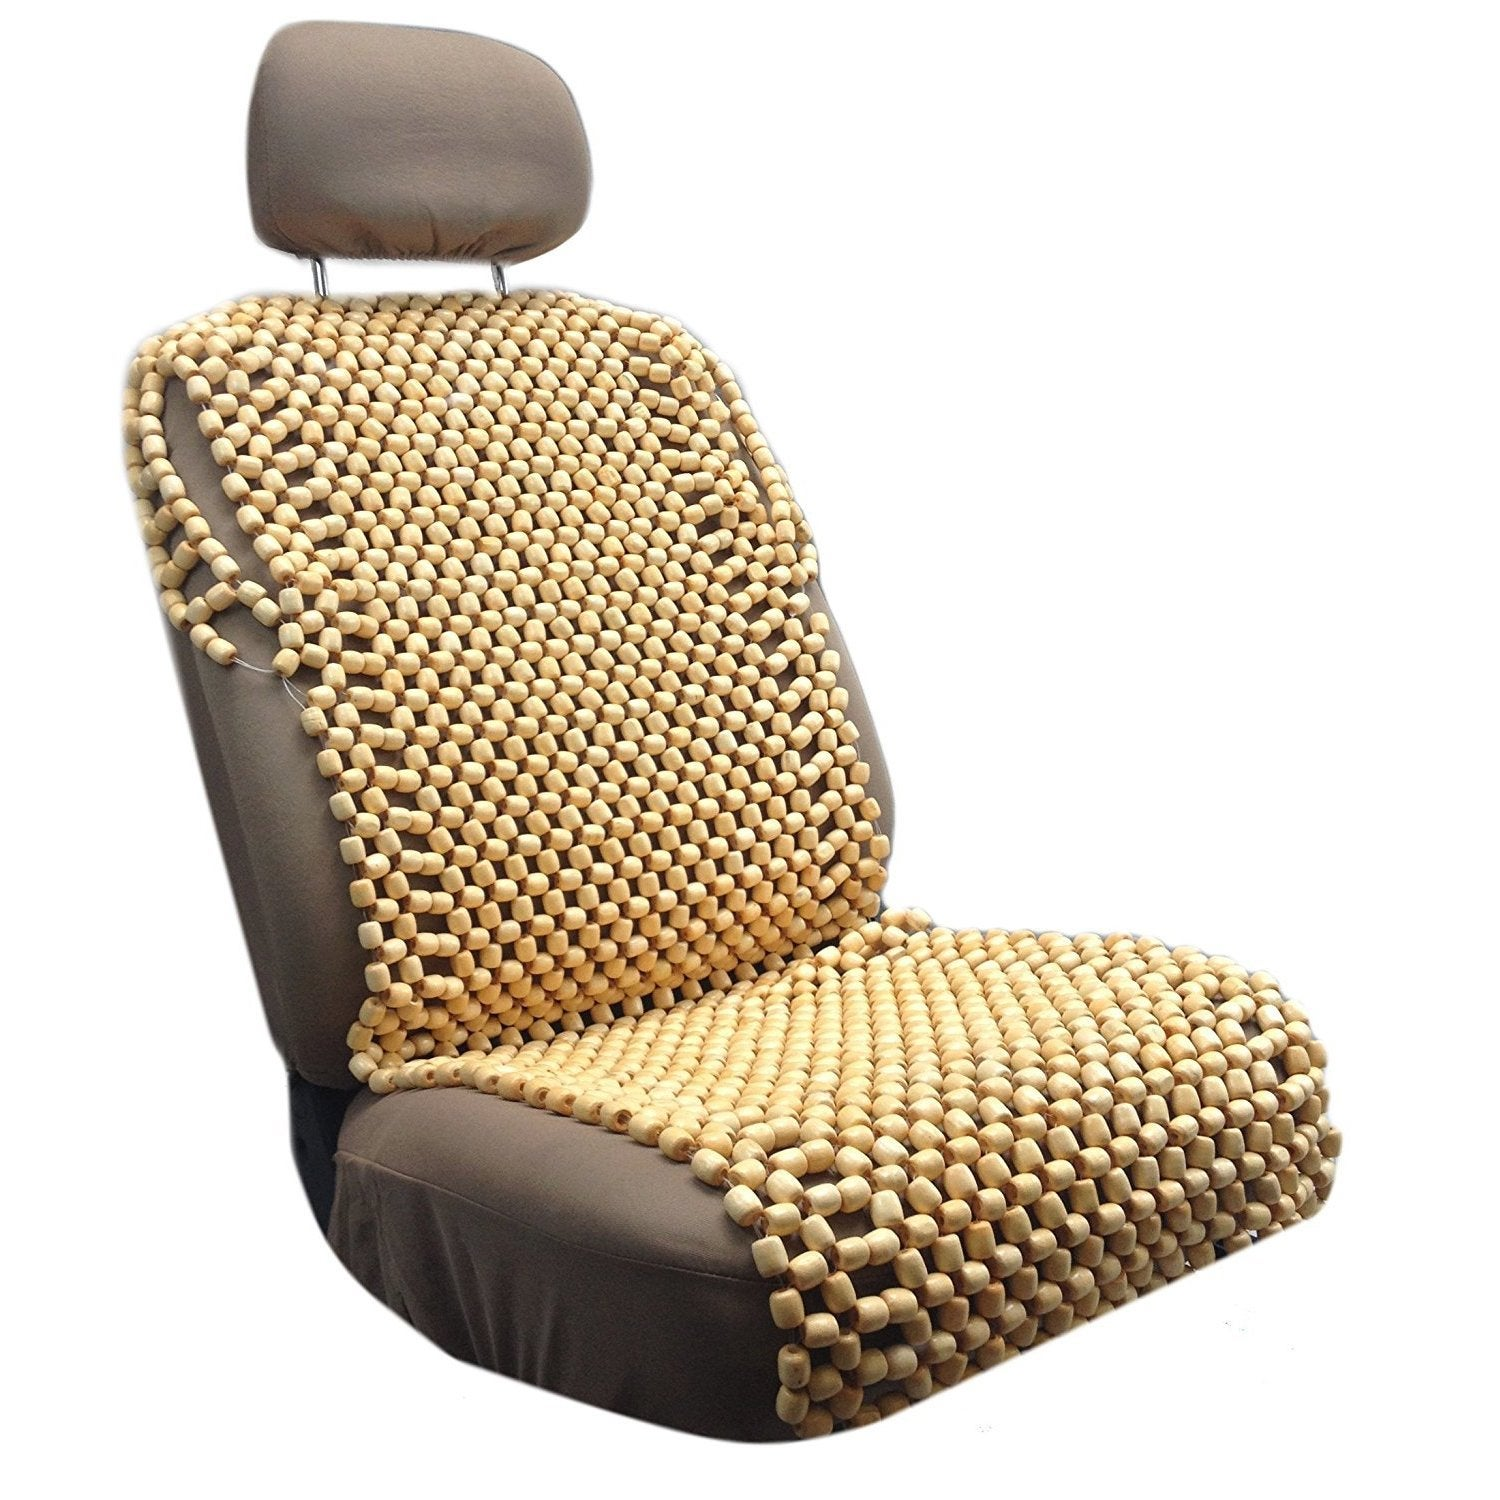 Brand New Car Truck SUV Van Wood Beaded Seat Cushion Color Natural